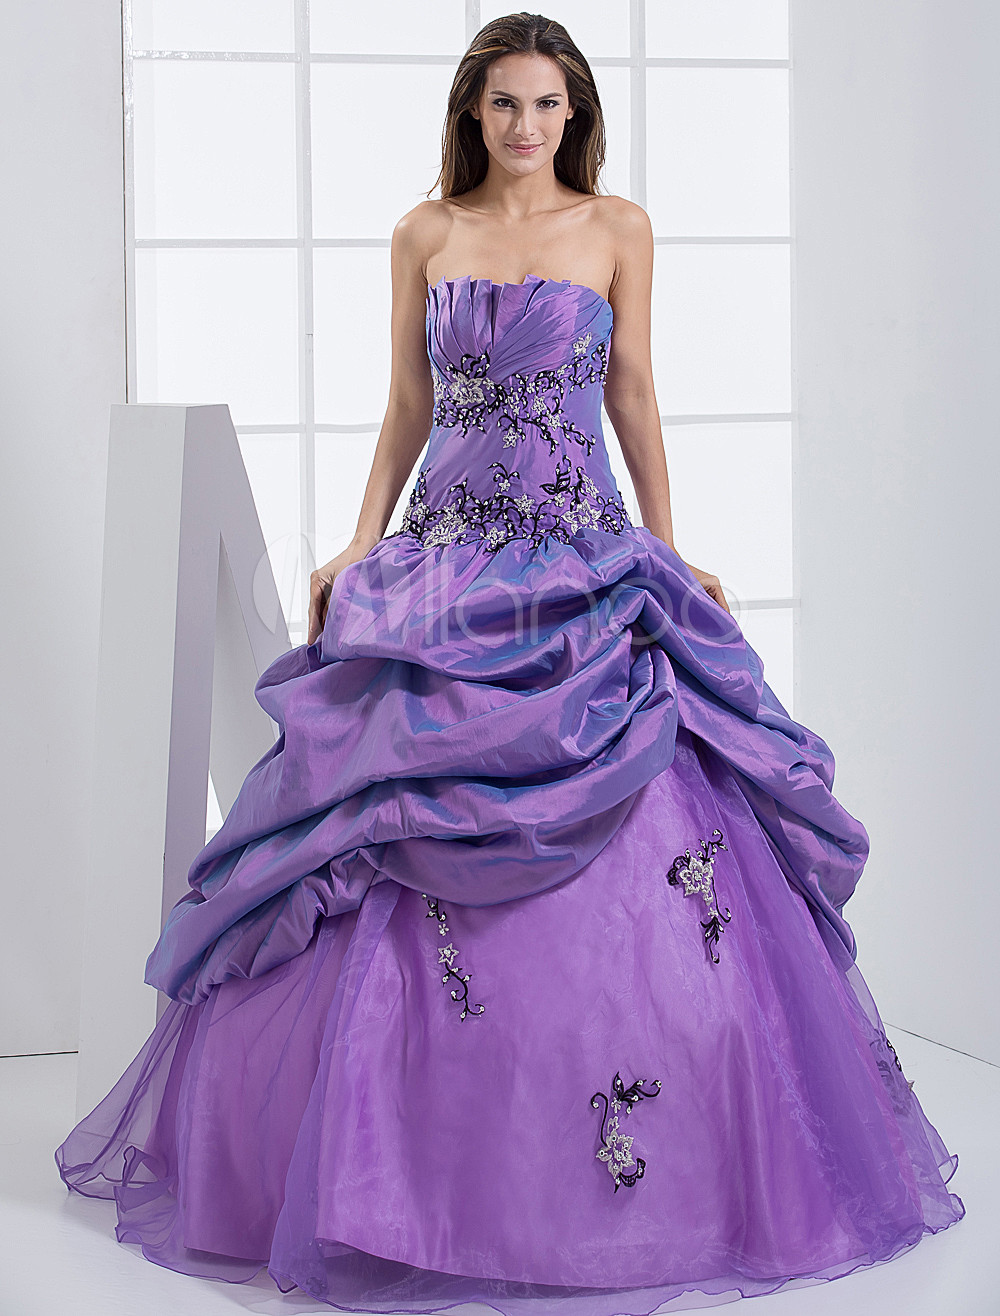 Purple Taffeta Strapless Floor Length Princess Prom Dress